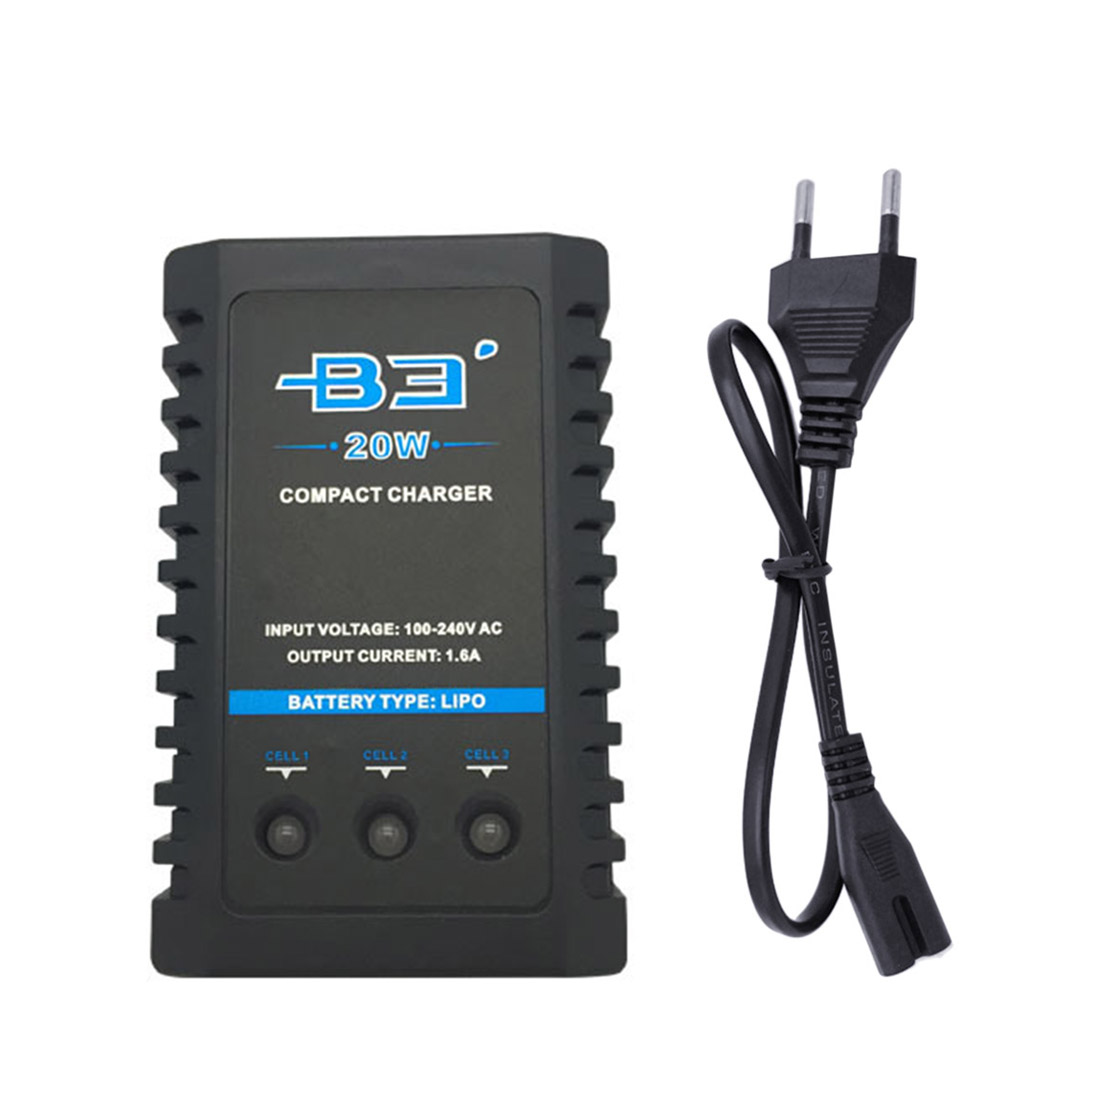 T238 Flash Bomb Flash Bang Battery Charger B3 2s-3s 20w Fast Charger Lithium Battery Charger With USB Cable For 11.1v 7.4v Battery